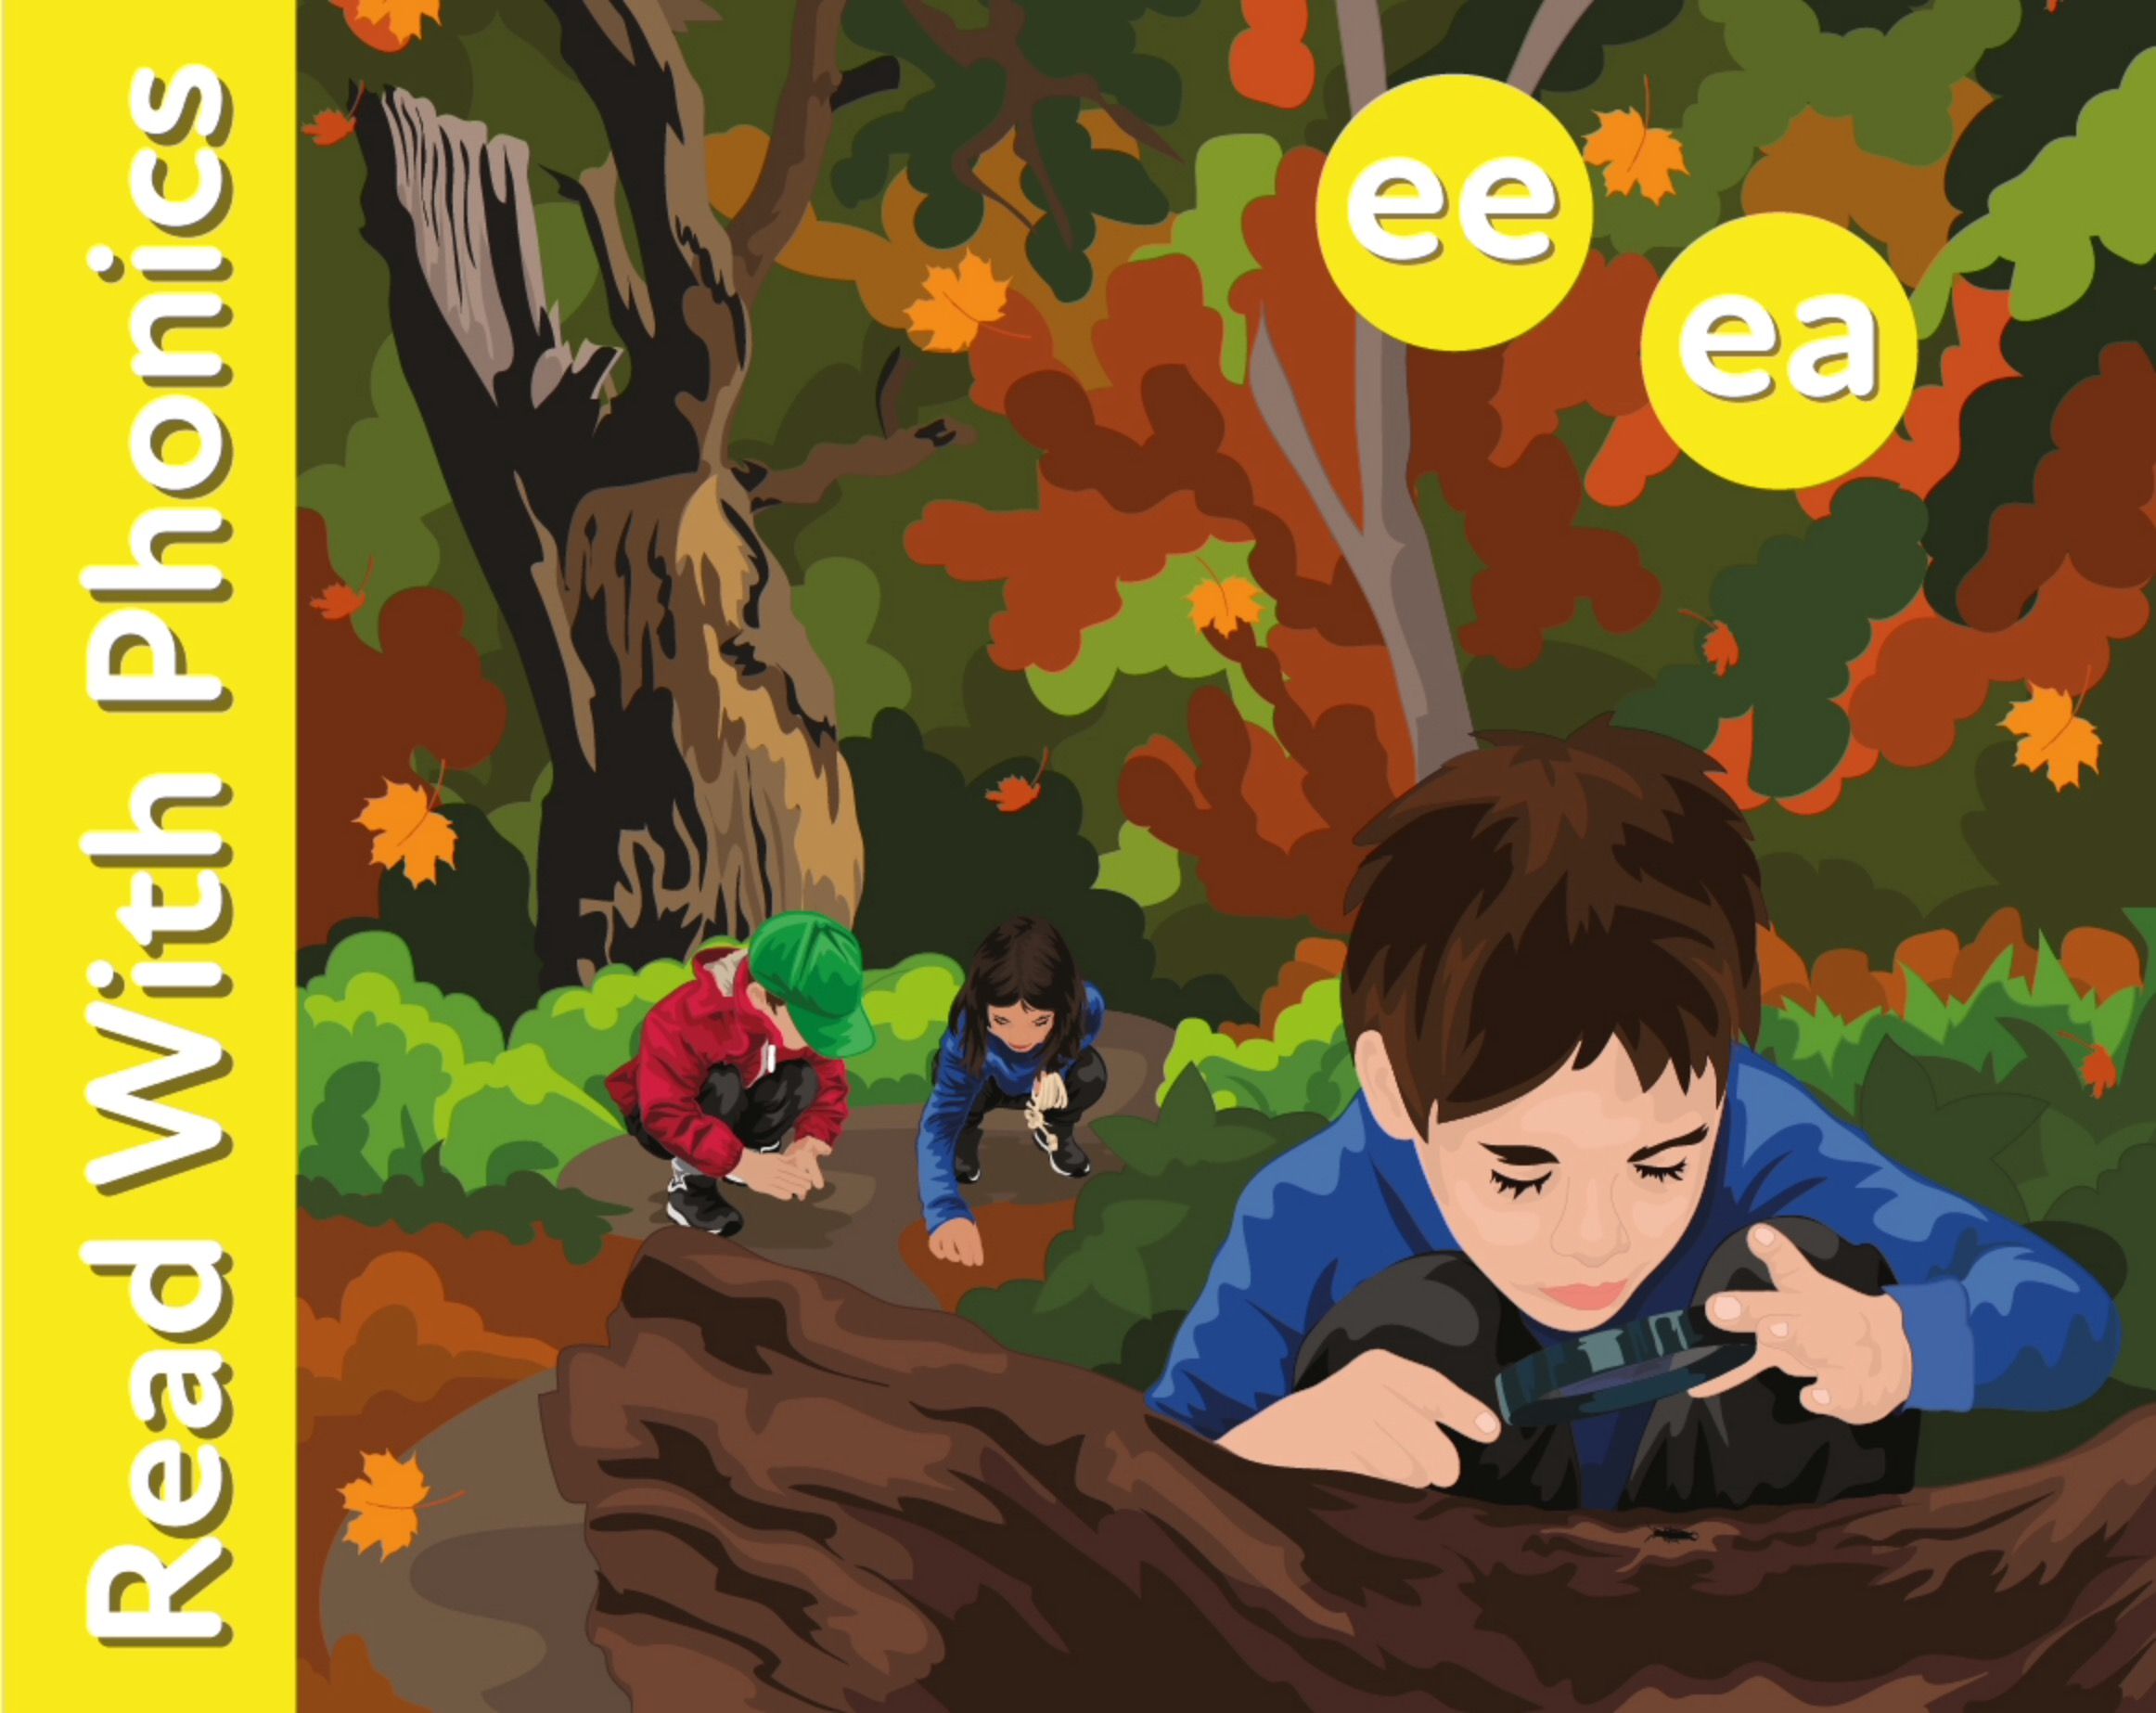 Learn The Phonic Sounds ee and ea (see and sea)